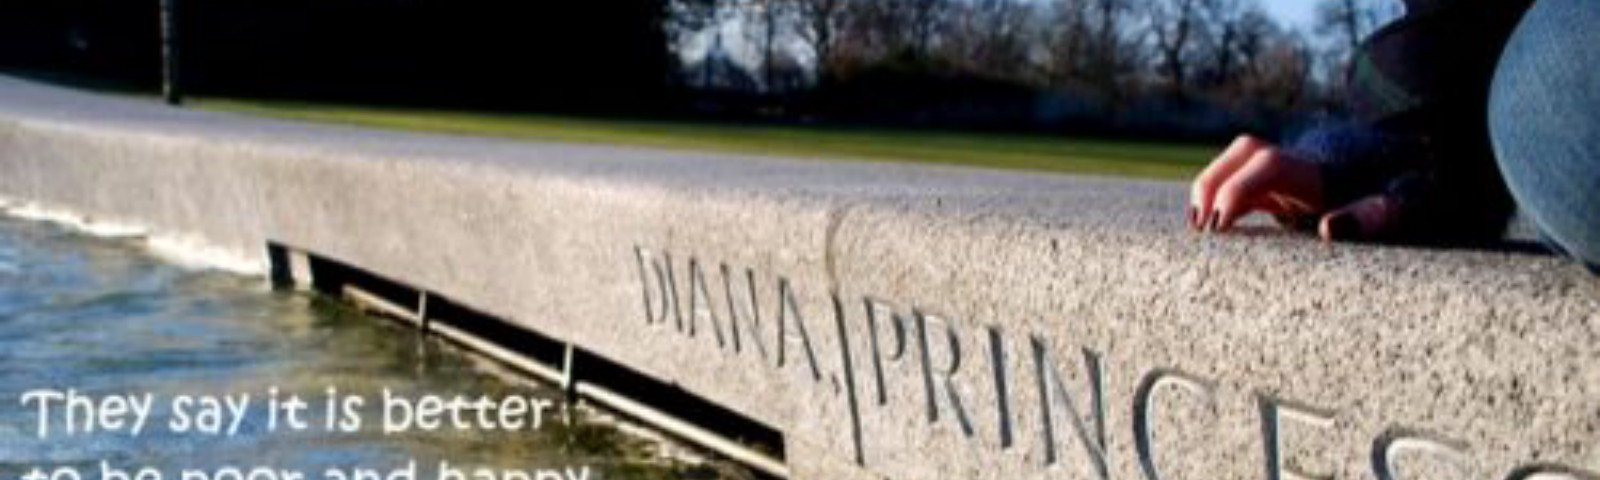 princess diana memorial photo and quote with attrib